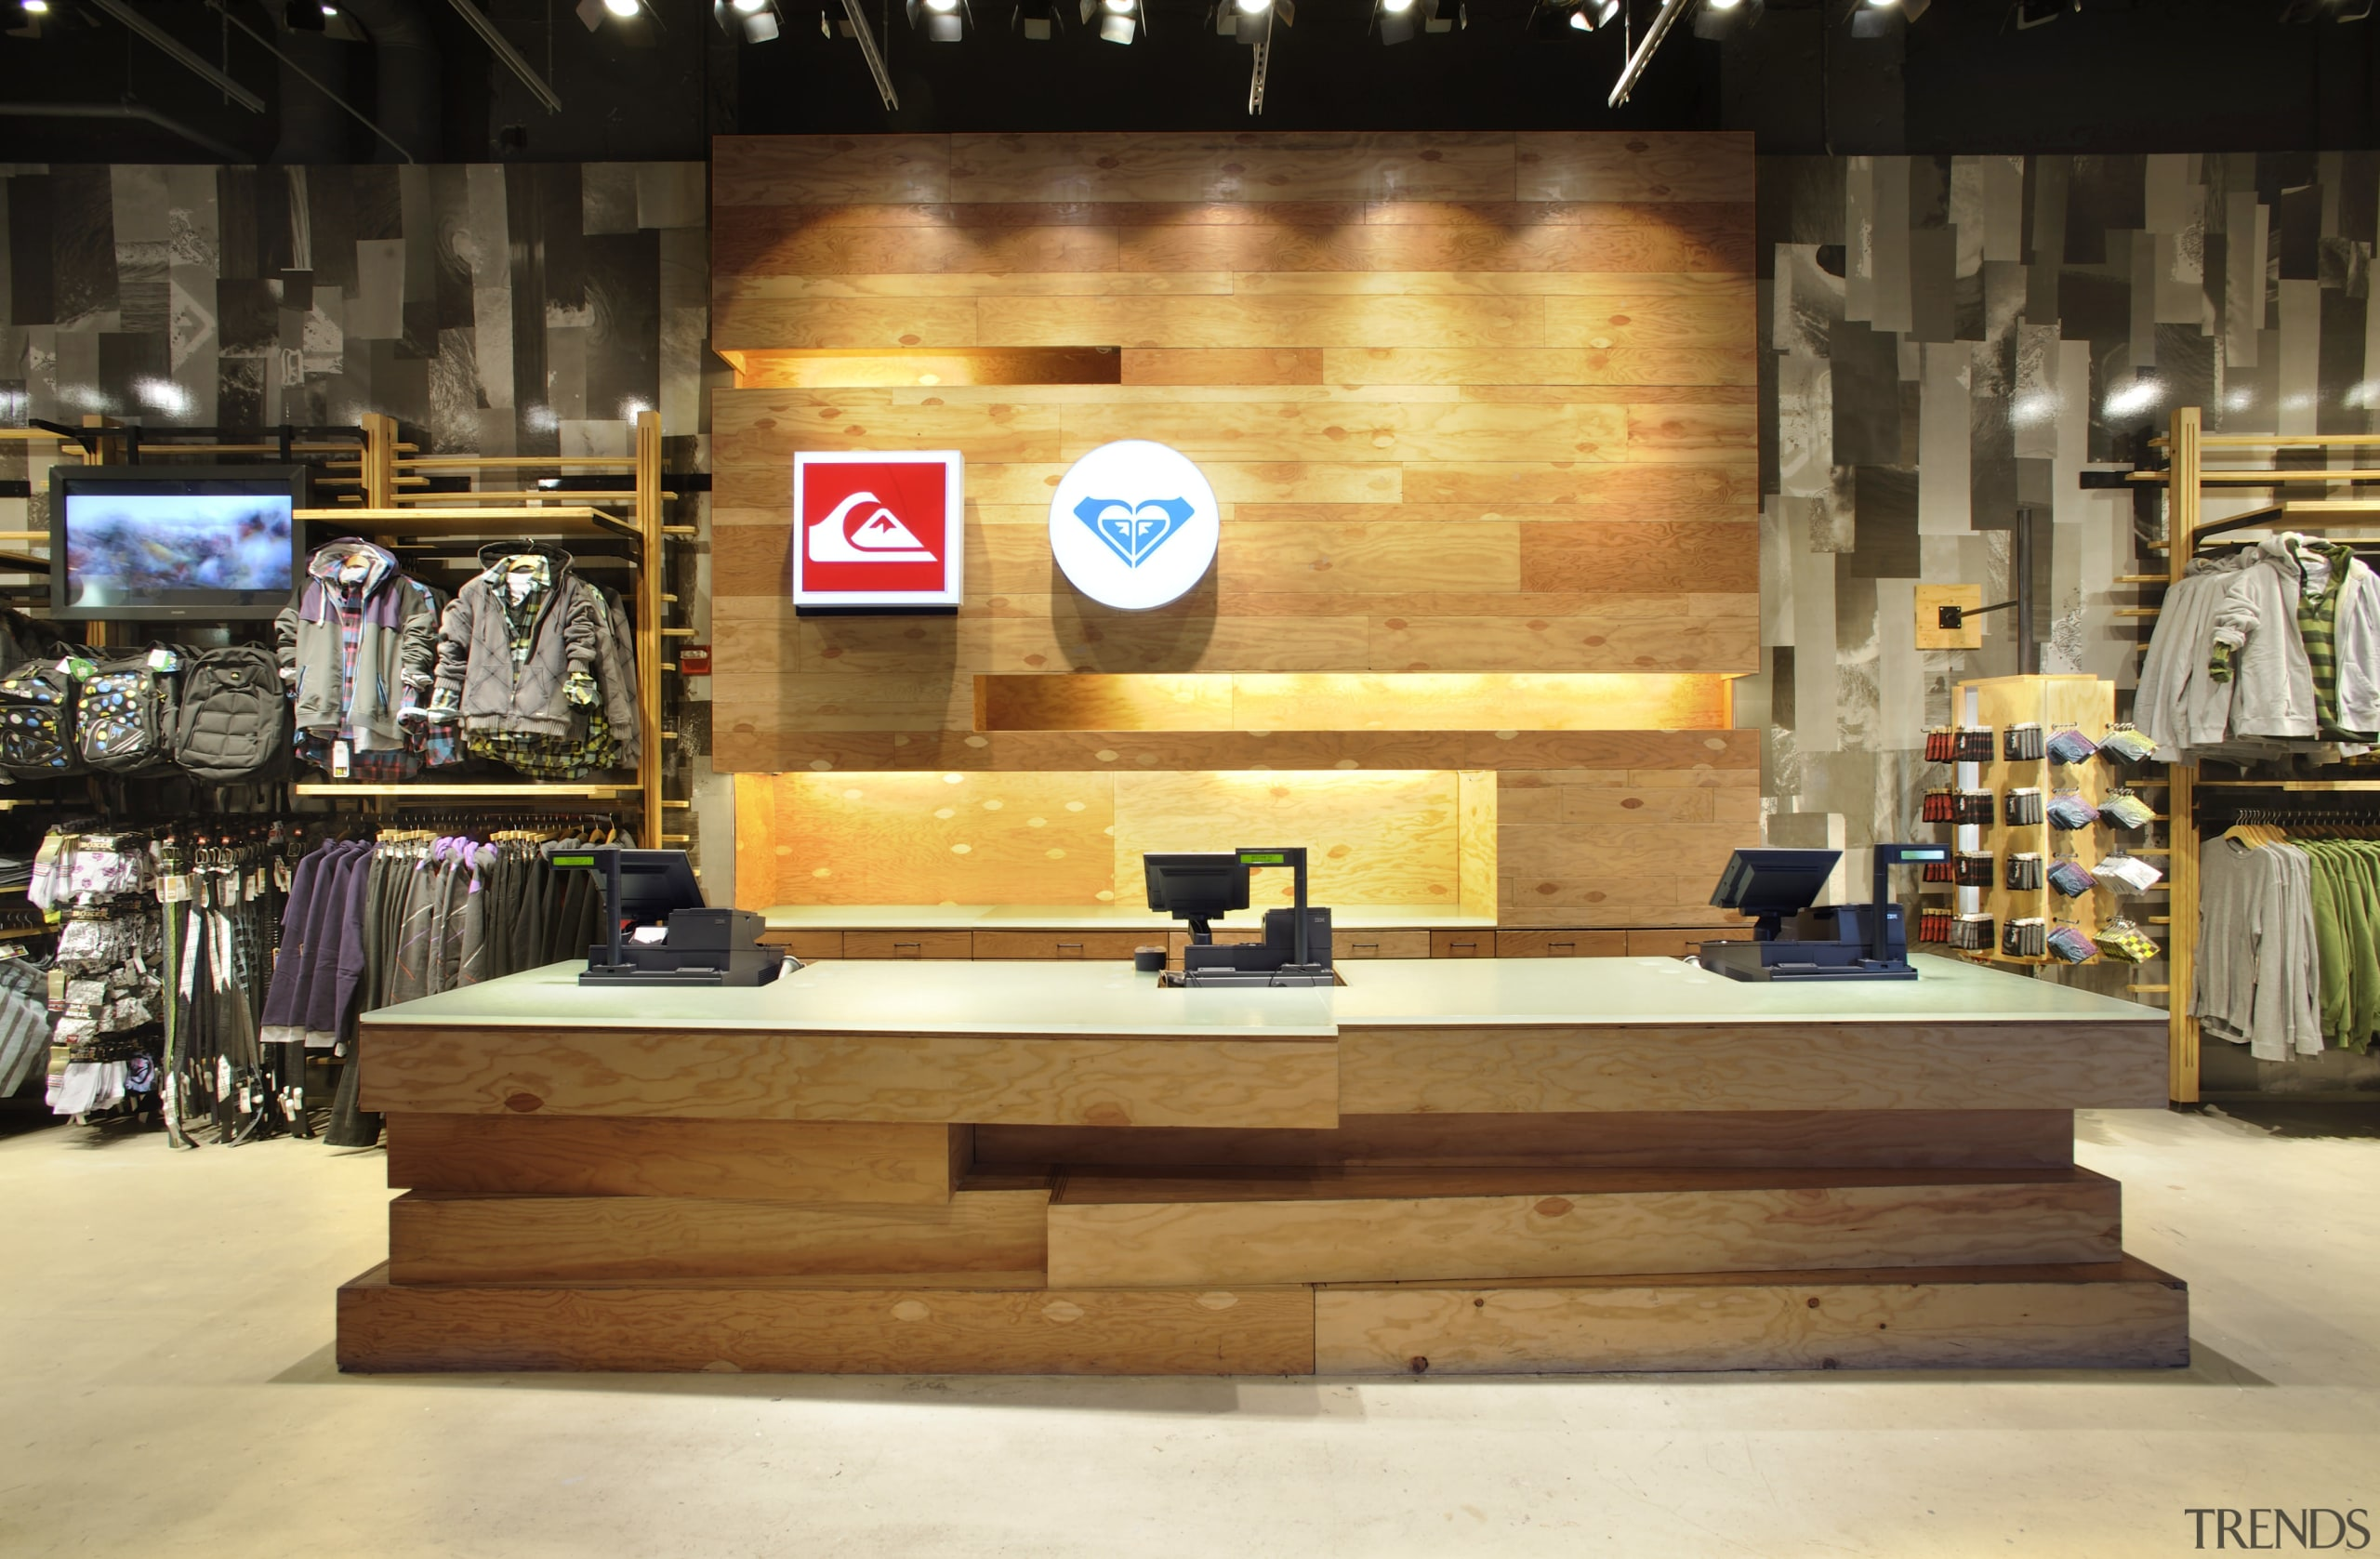 Interior view of the Quicksilver store in New furniture, wood, orange, brown